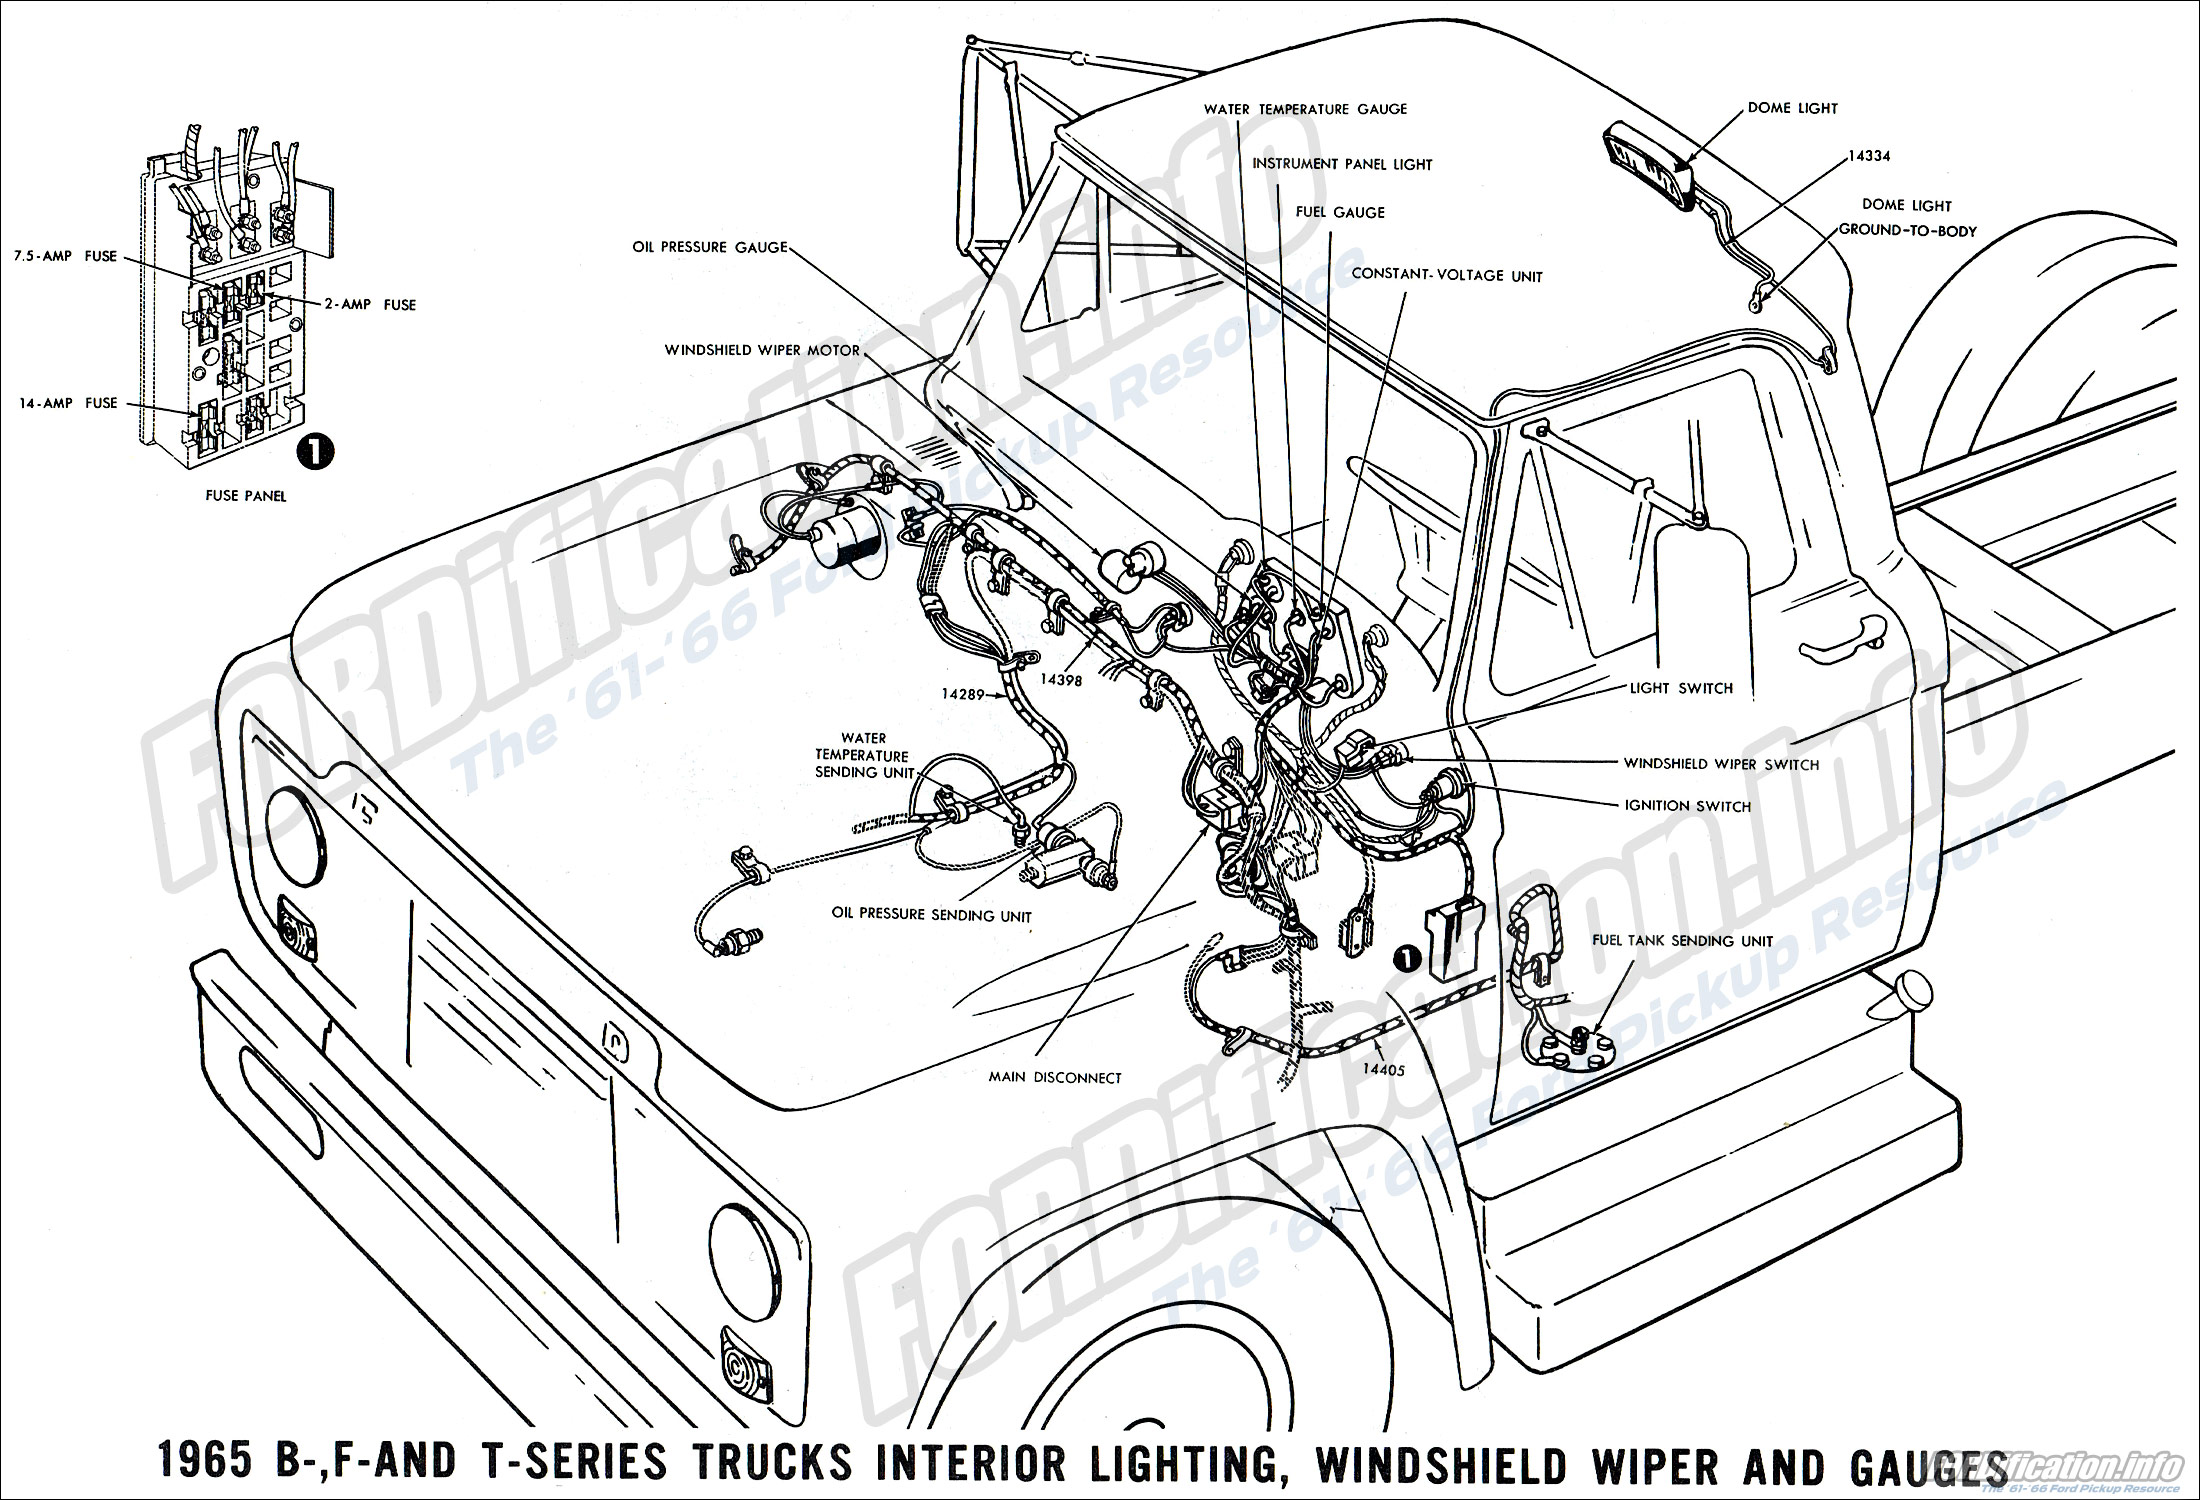 Ford F100 Light Switch Wiring Diagram Starting Know About 1954 Headlight 1965 Truck Diagrams Fordification Info The 61 66 Rh 2002 F250